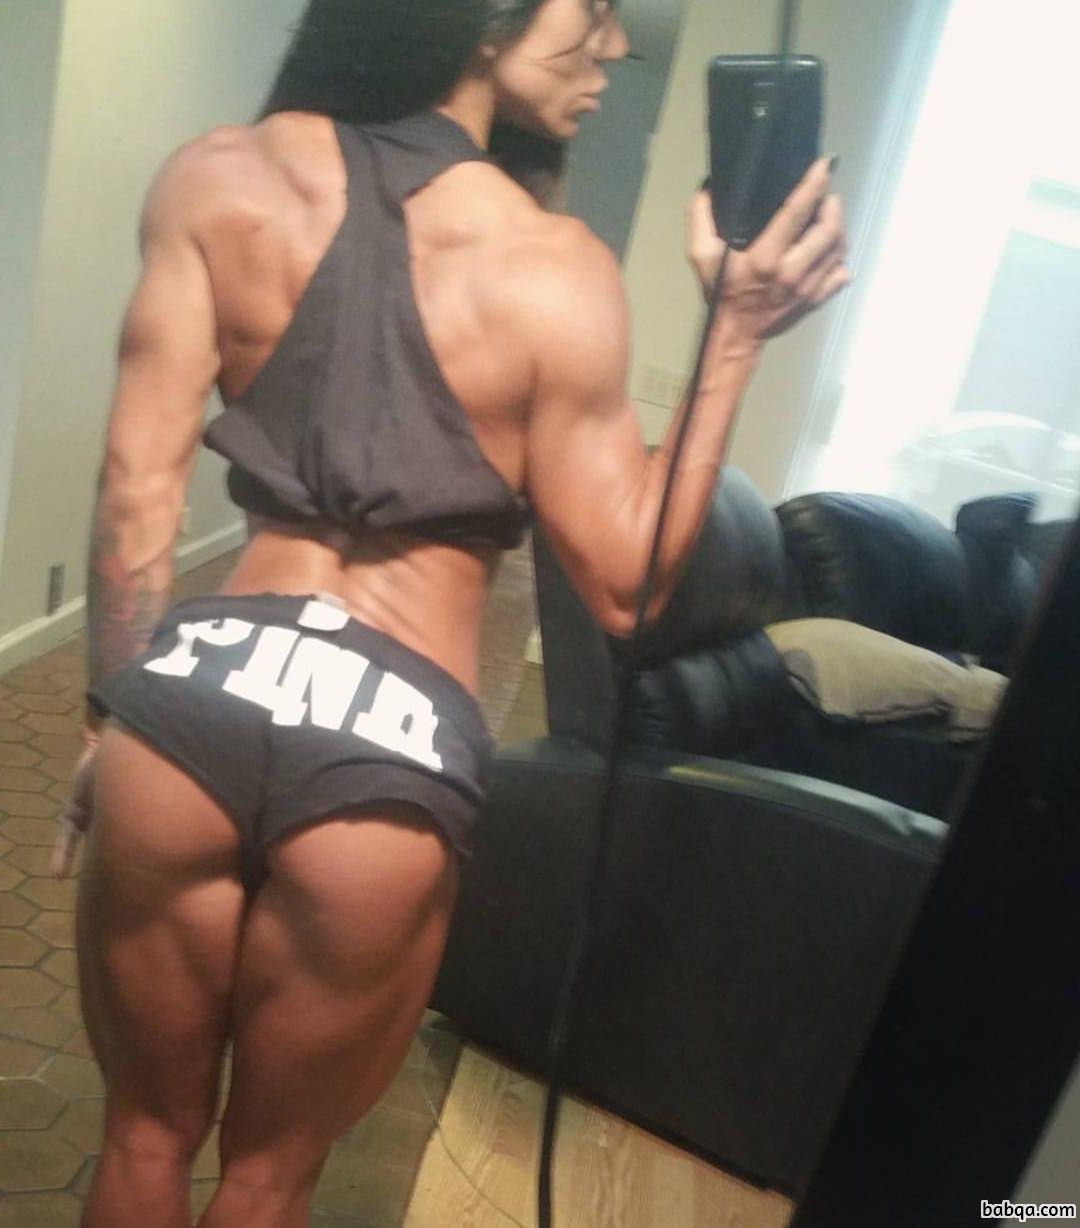 hottest lady with muscle body and muscle bottom repost from tumblr